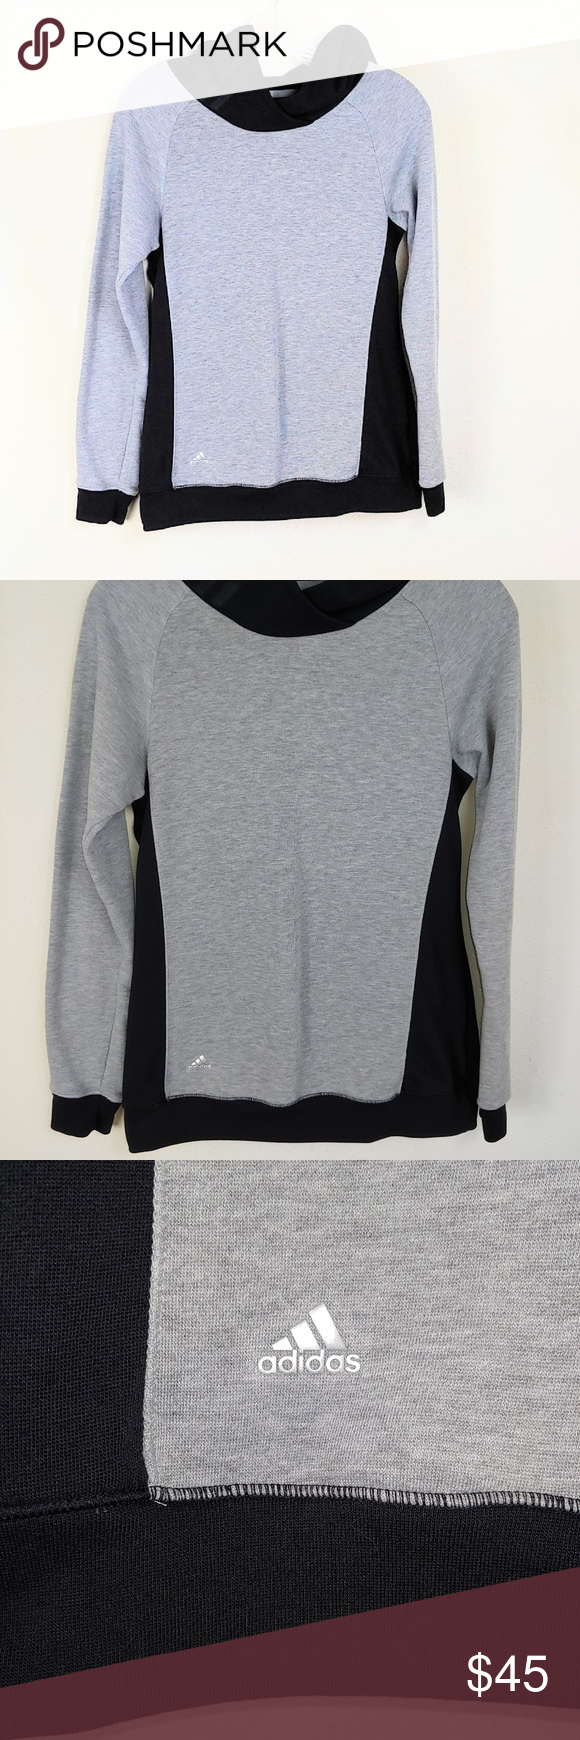 Adidas Cowl Neck Hoodie Simple A48 Clothes Design Fashion Fashion Trends [ 1740 x 580 Pixel ]